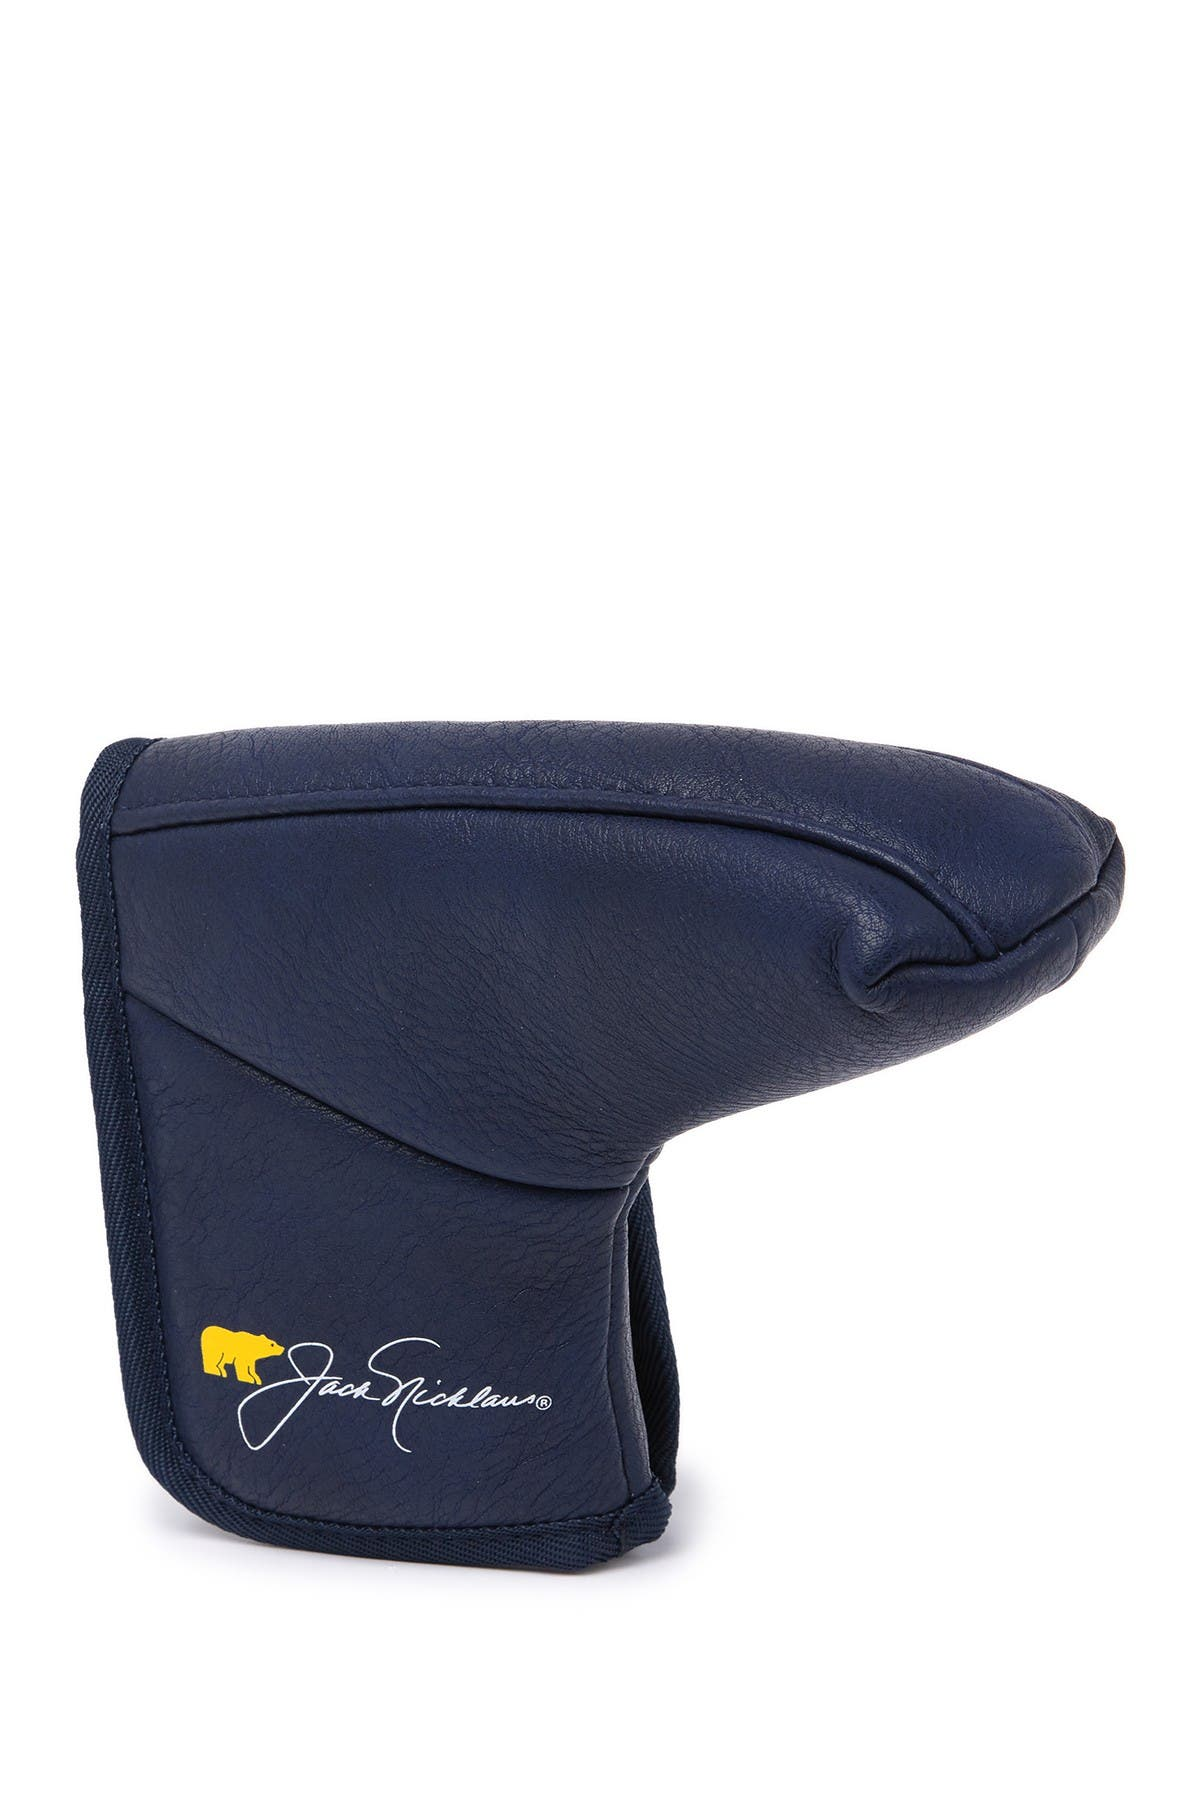 Image of Jack Nicklaus Golf Blade Cover